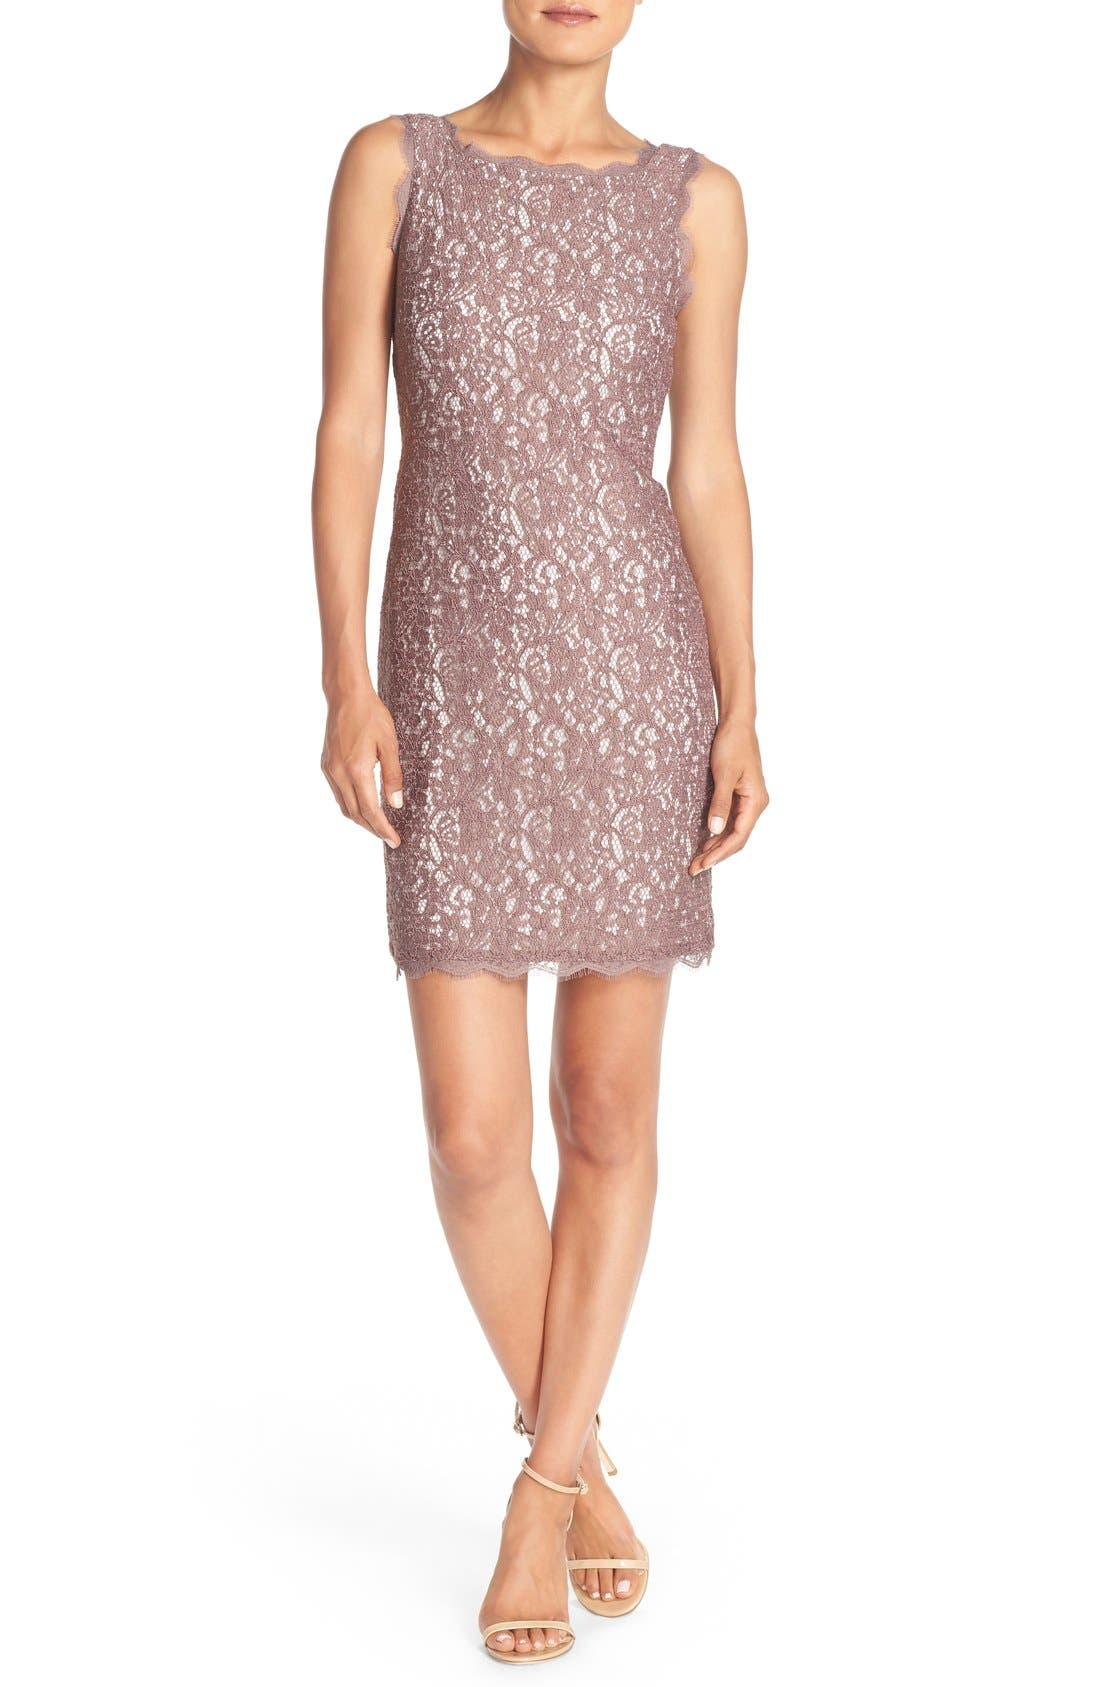 Boatneck Lace Sheath Dress,                             Alternate thumbnail 7, color,                             Cappuccino/ Ivory